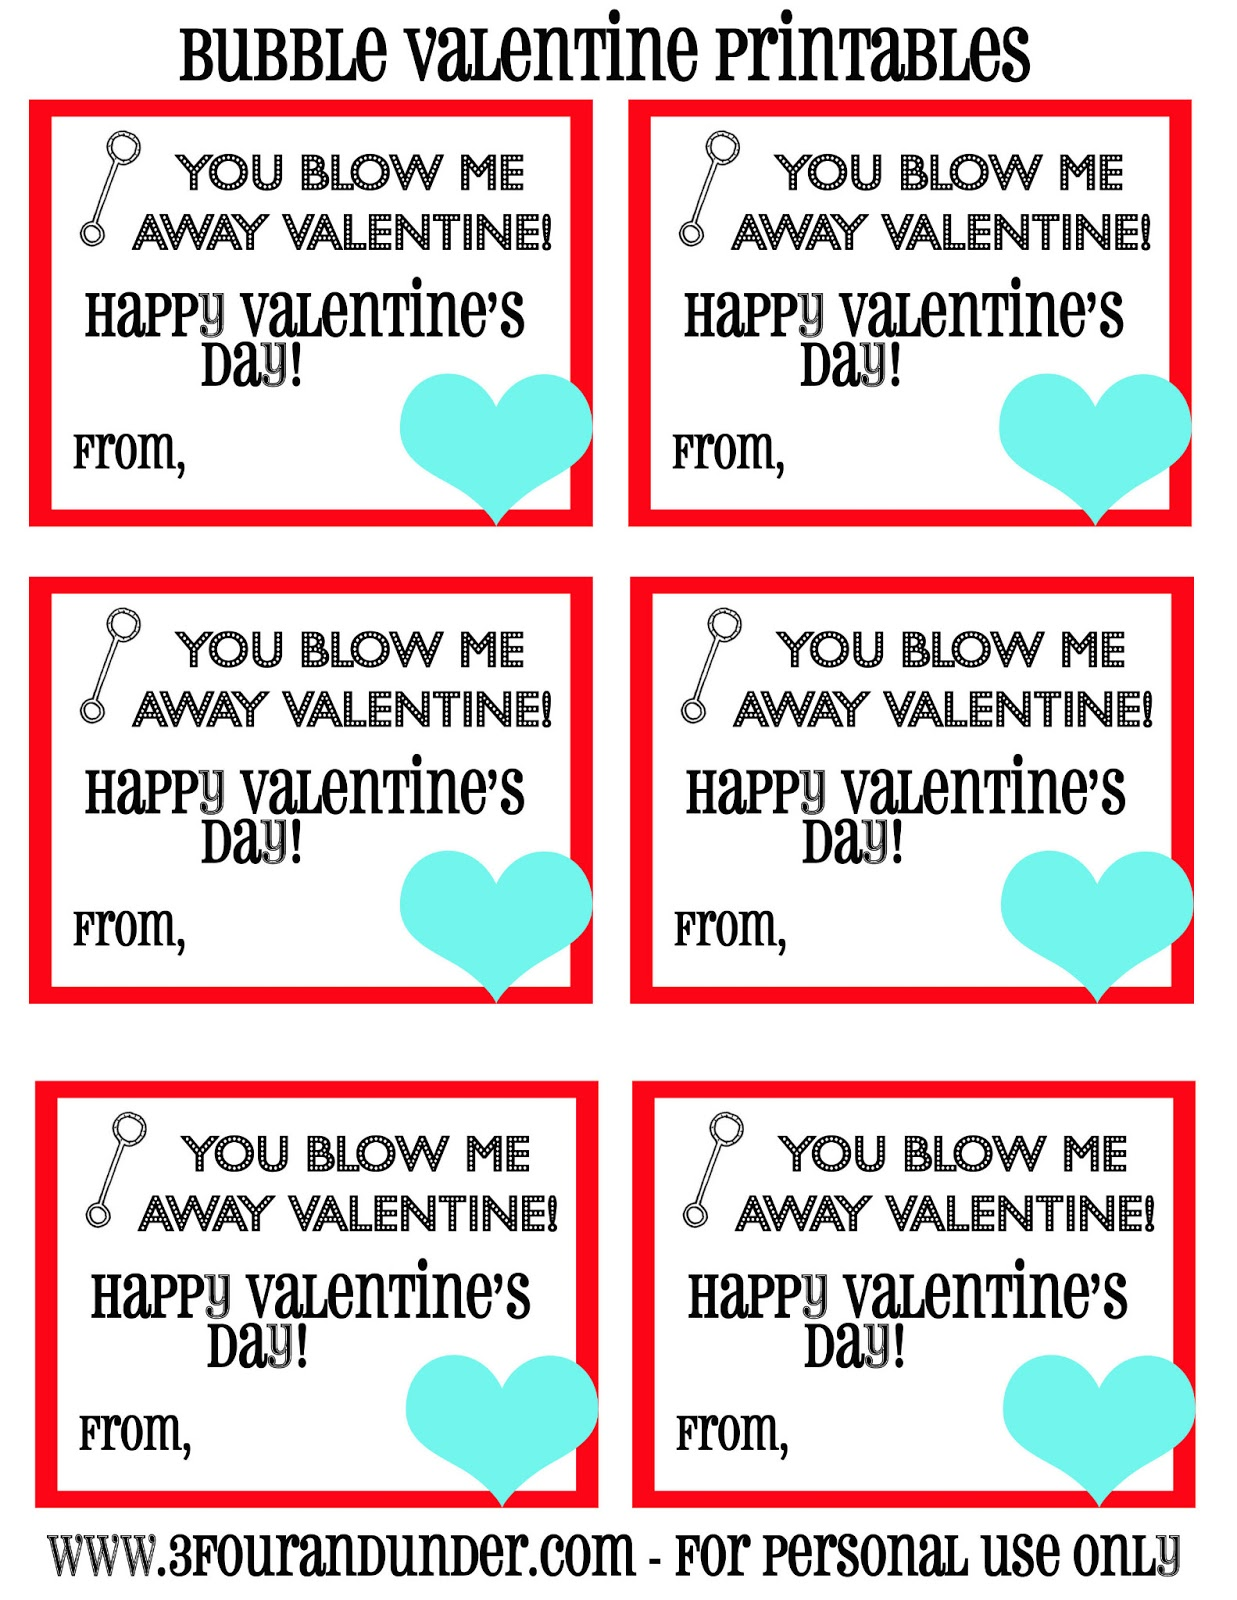 This is a graphic of Dynamic Bubble Valentine Printable